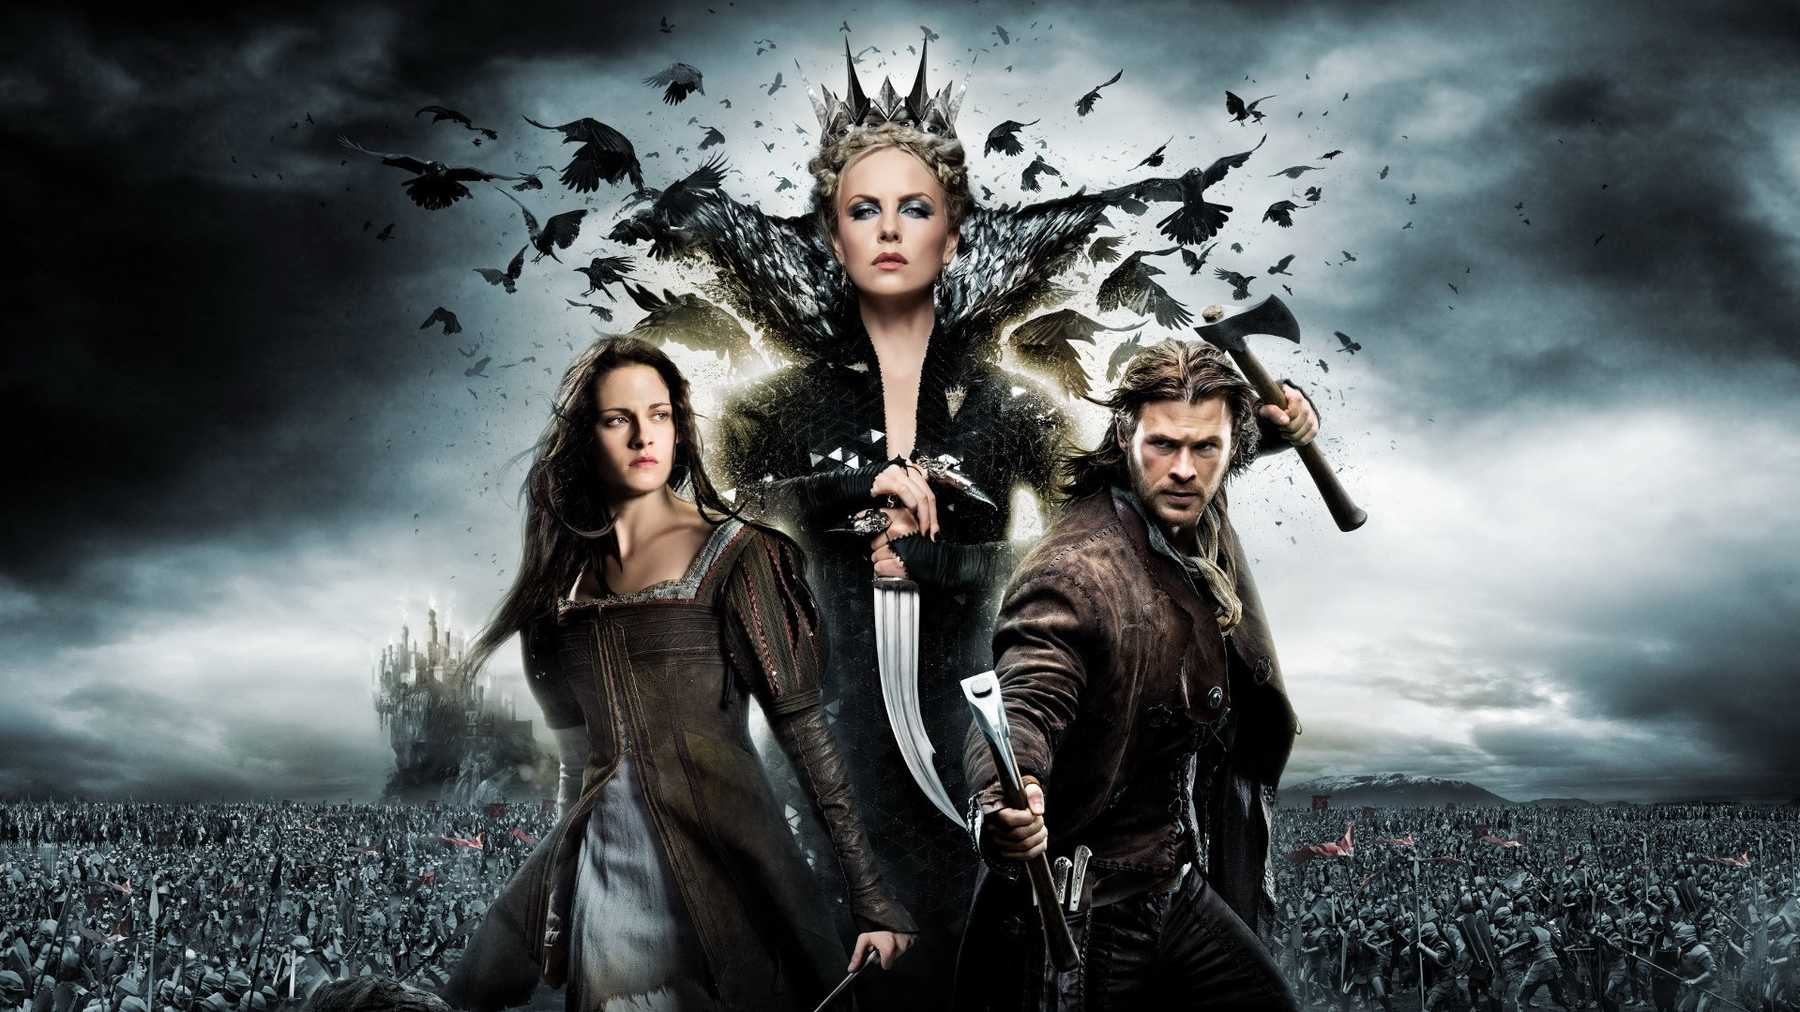 Snow White And The Huntsman Review | Movie - Empire